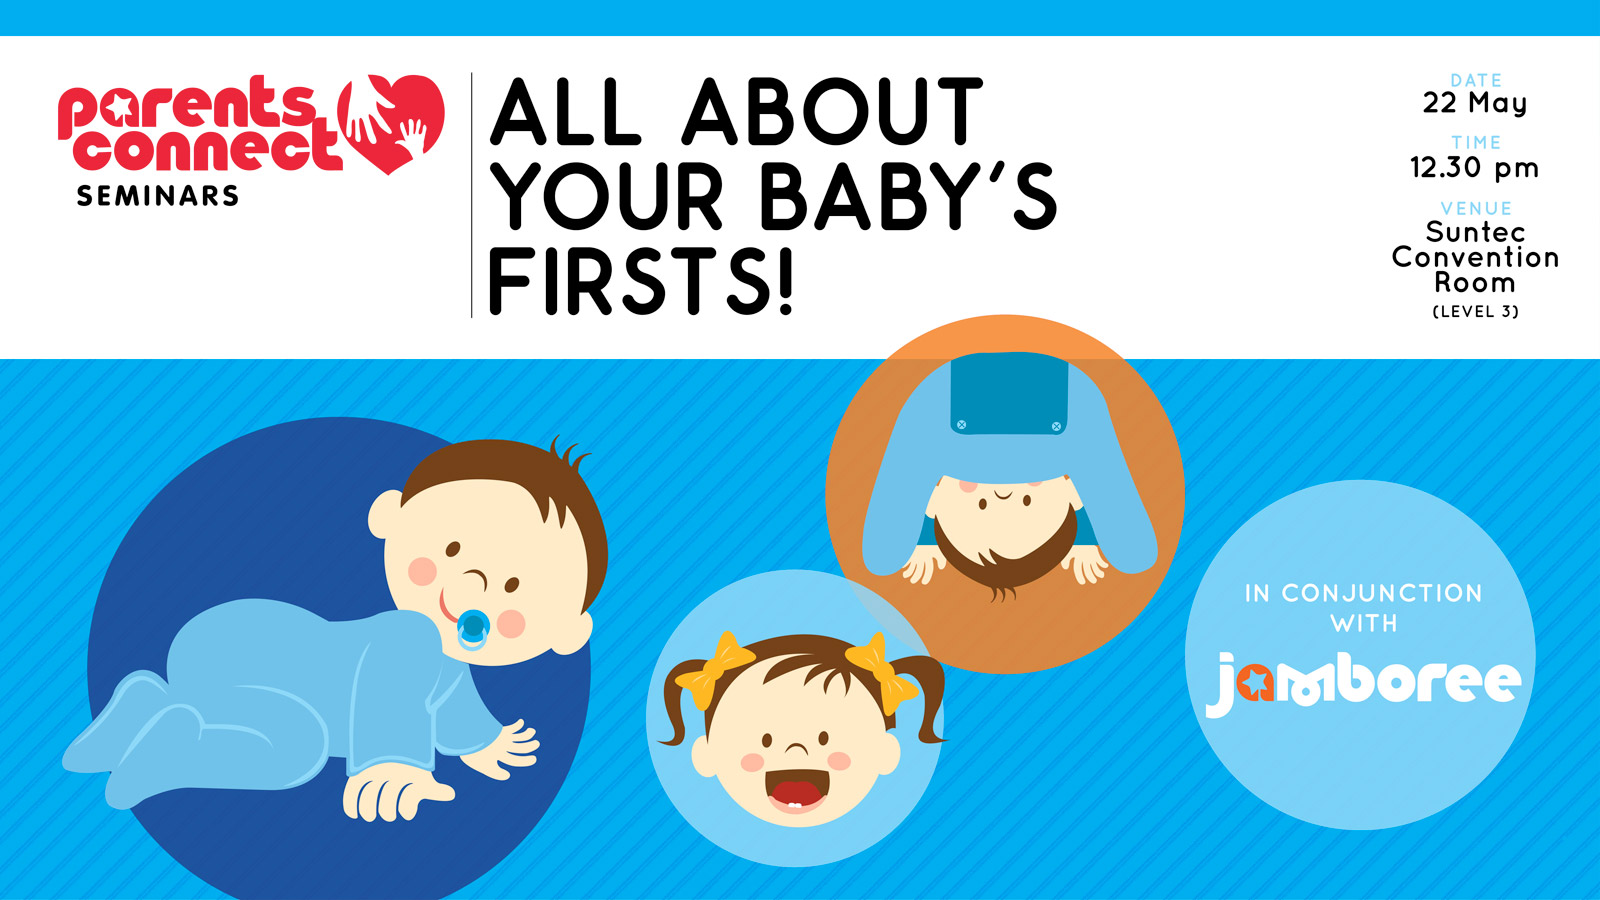 All About Your Baby's FIRSTs!